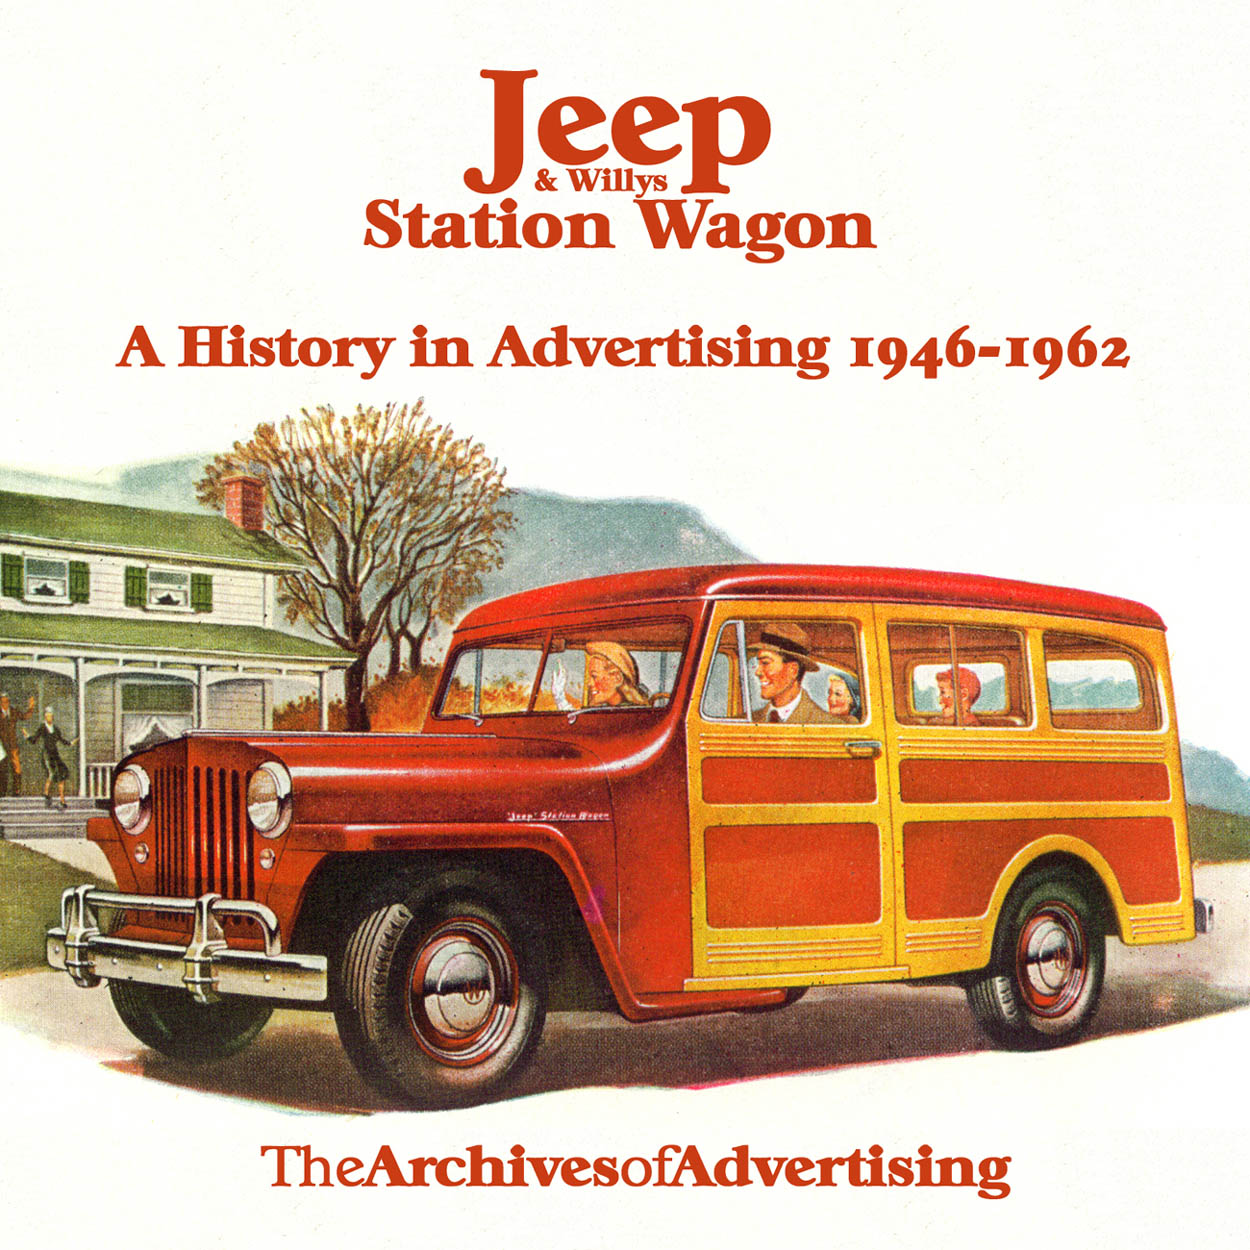 Image for 1946 1947 1948 1949 1950 1951 1952-1962 Jeep Willys Station Wagon ad CD 100+ ads